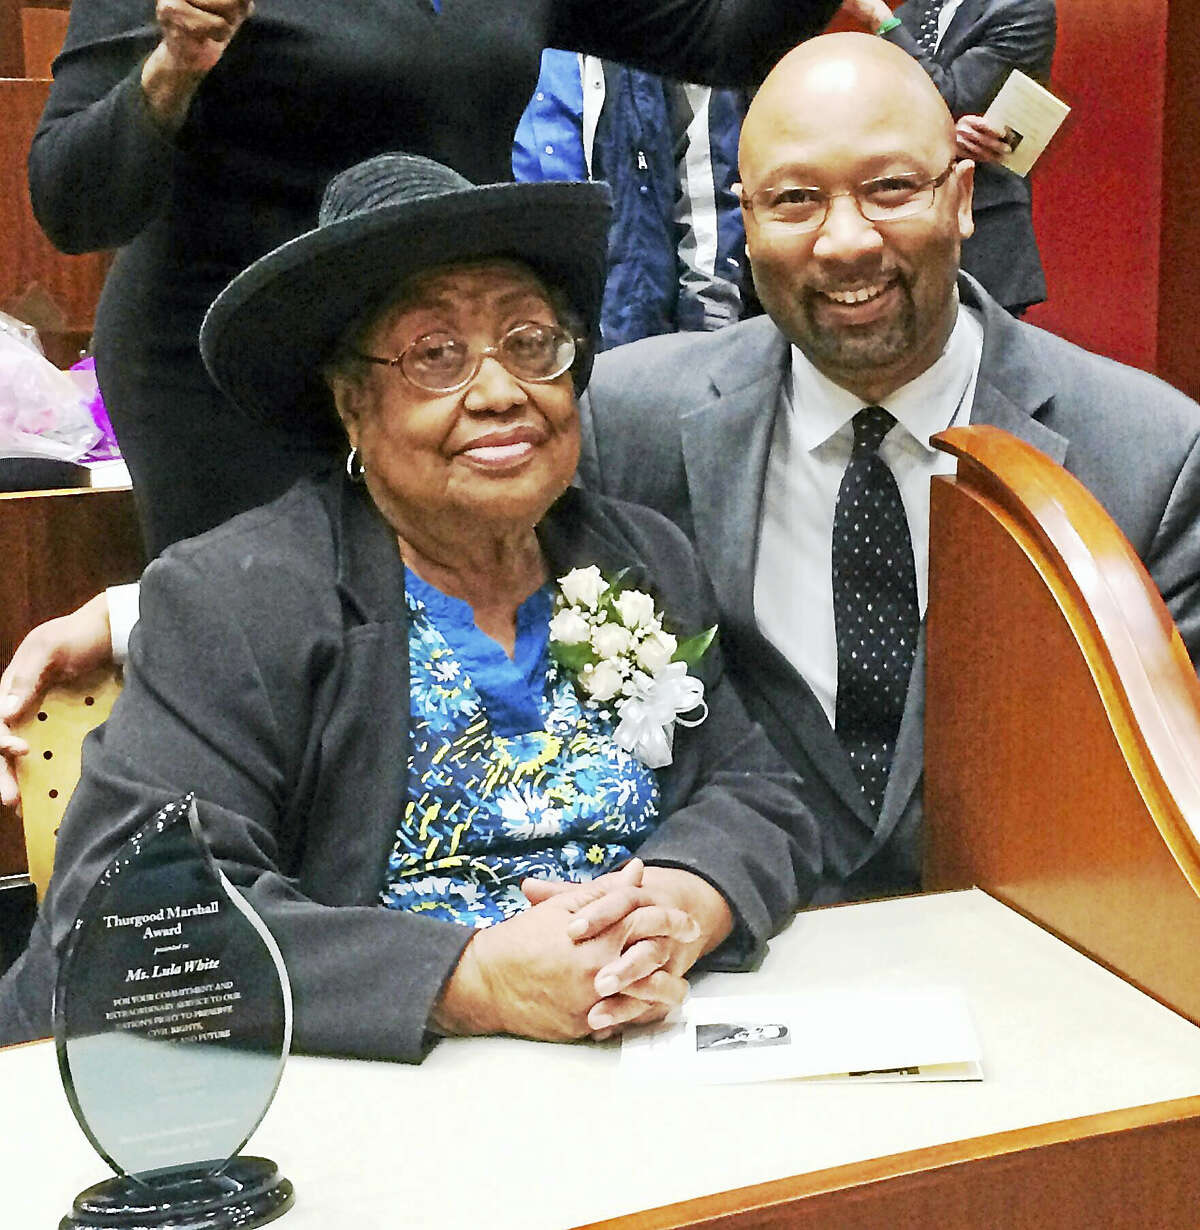 Retired New Haven high school history teacher Lula White will receive a lifetime achievement award from the Southern Connecticut Chapter of the Union of Black Episcopalians. She is shown here with Southern Connecticut UBE President Steven R. Mullins.